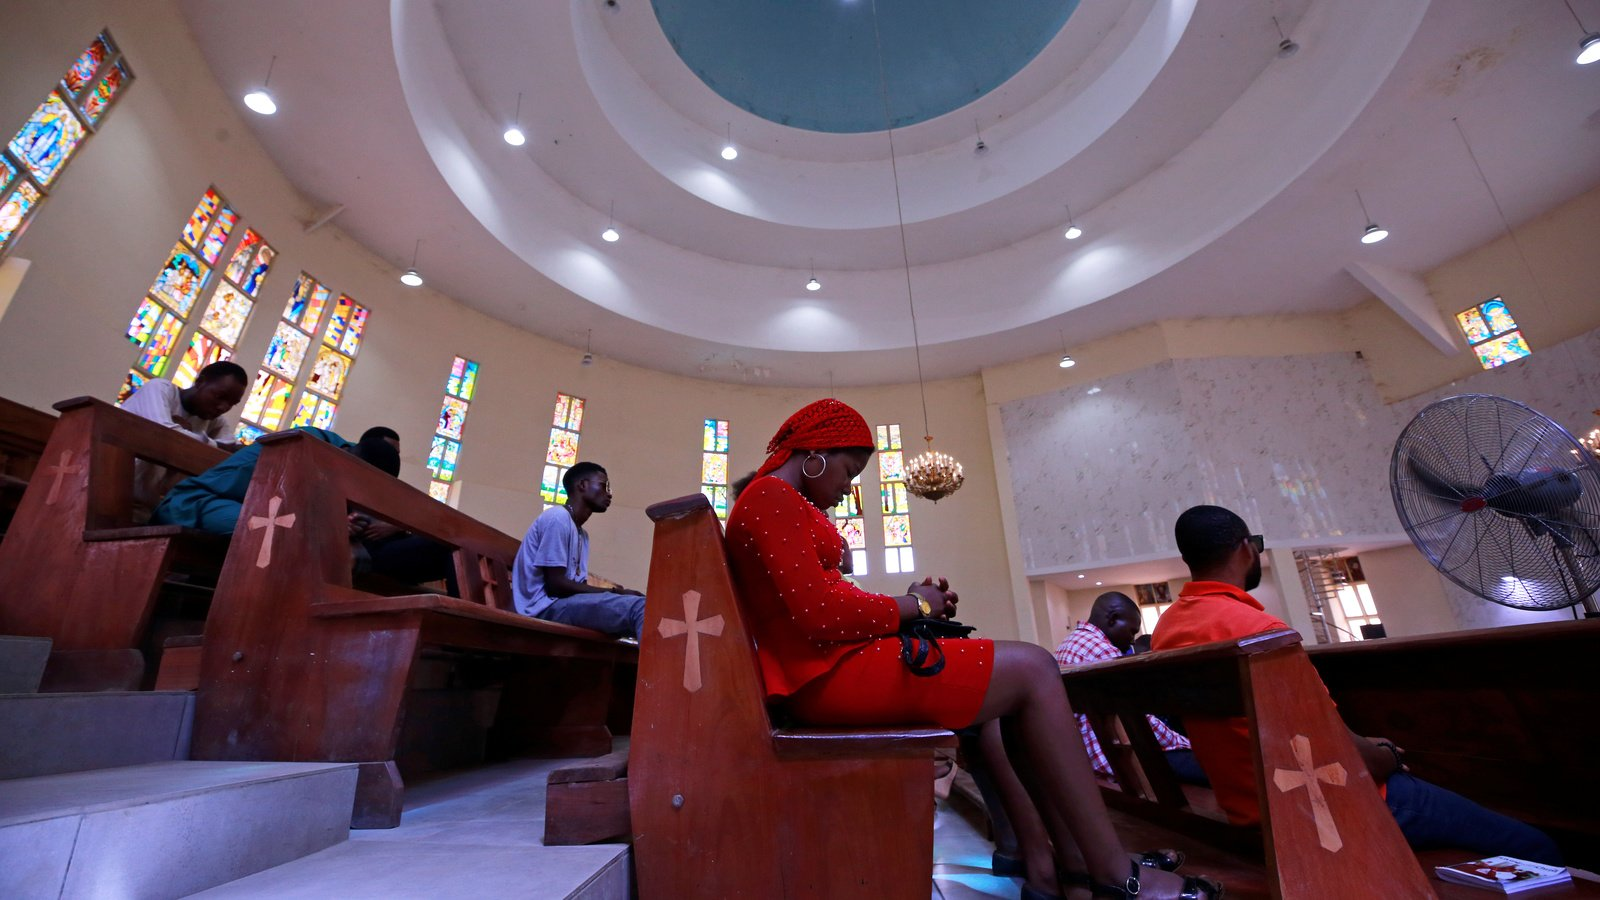 LAGOS EASES VIRUS LOCKDOWN, REOPENING CHURCHES, MOSQUES